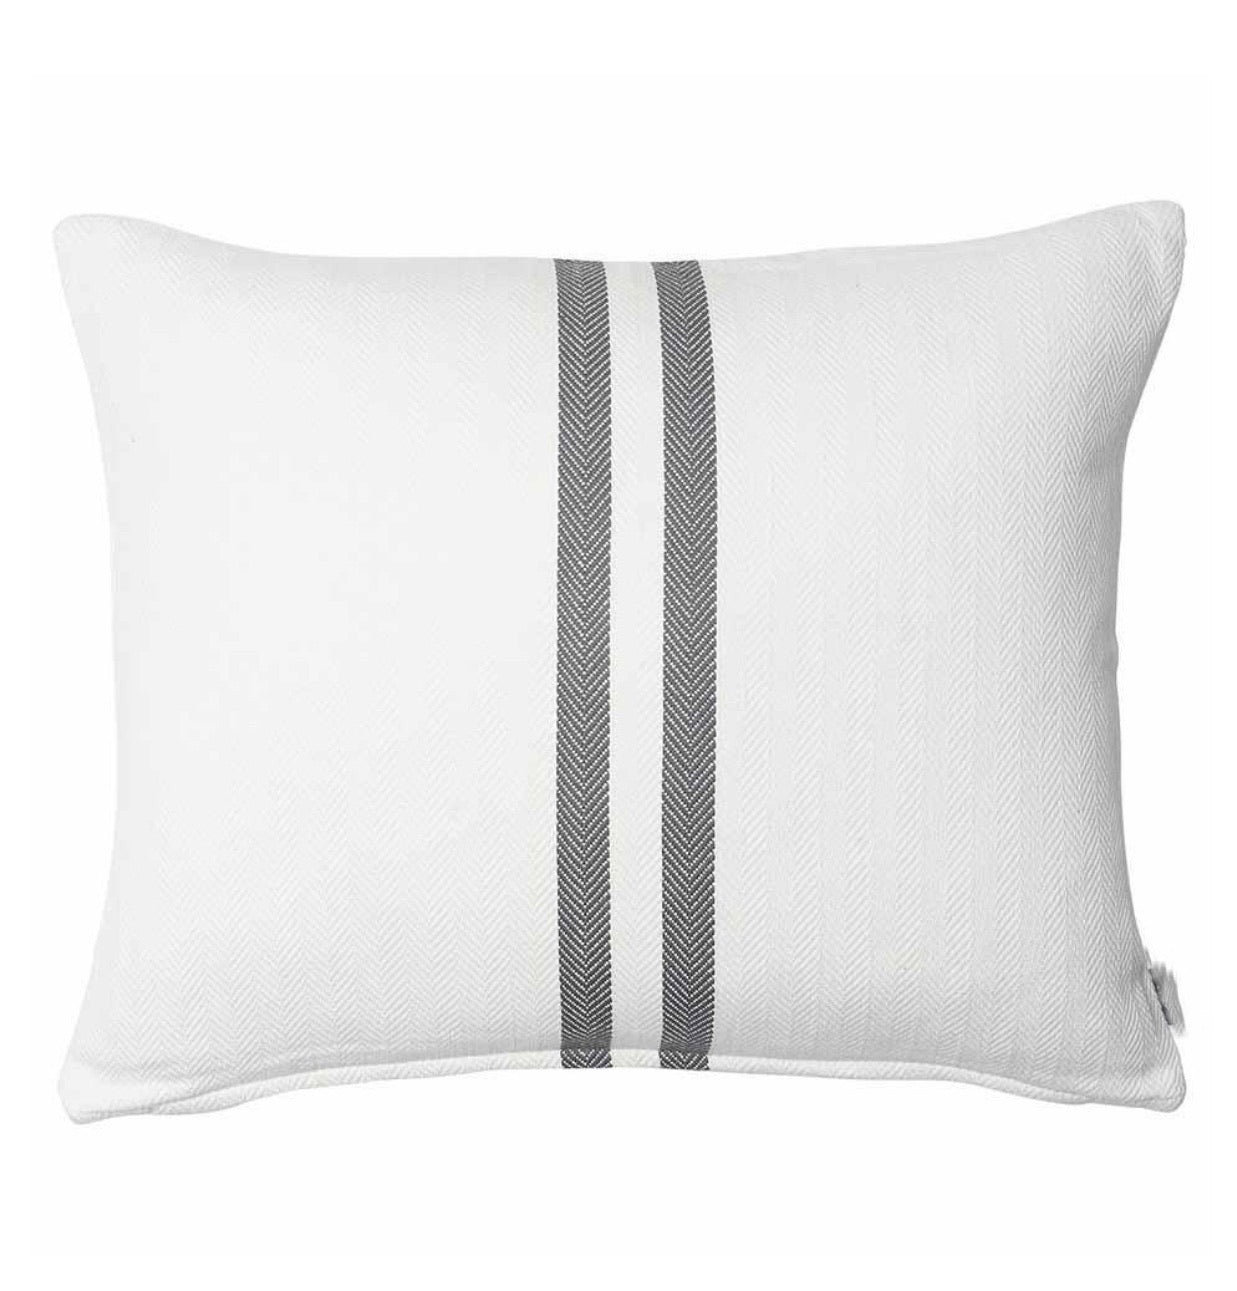 Herringbone Stripe Cushion - Slate